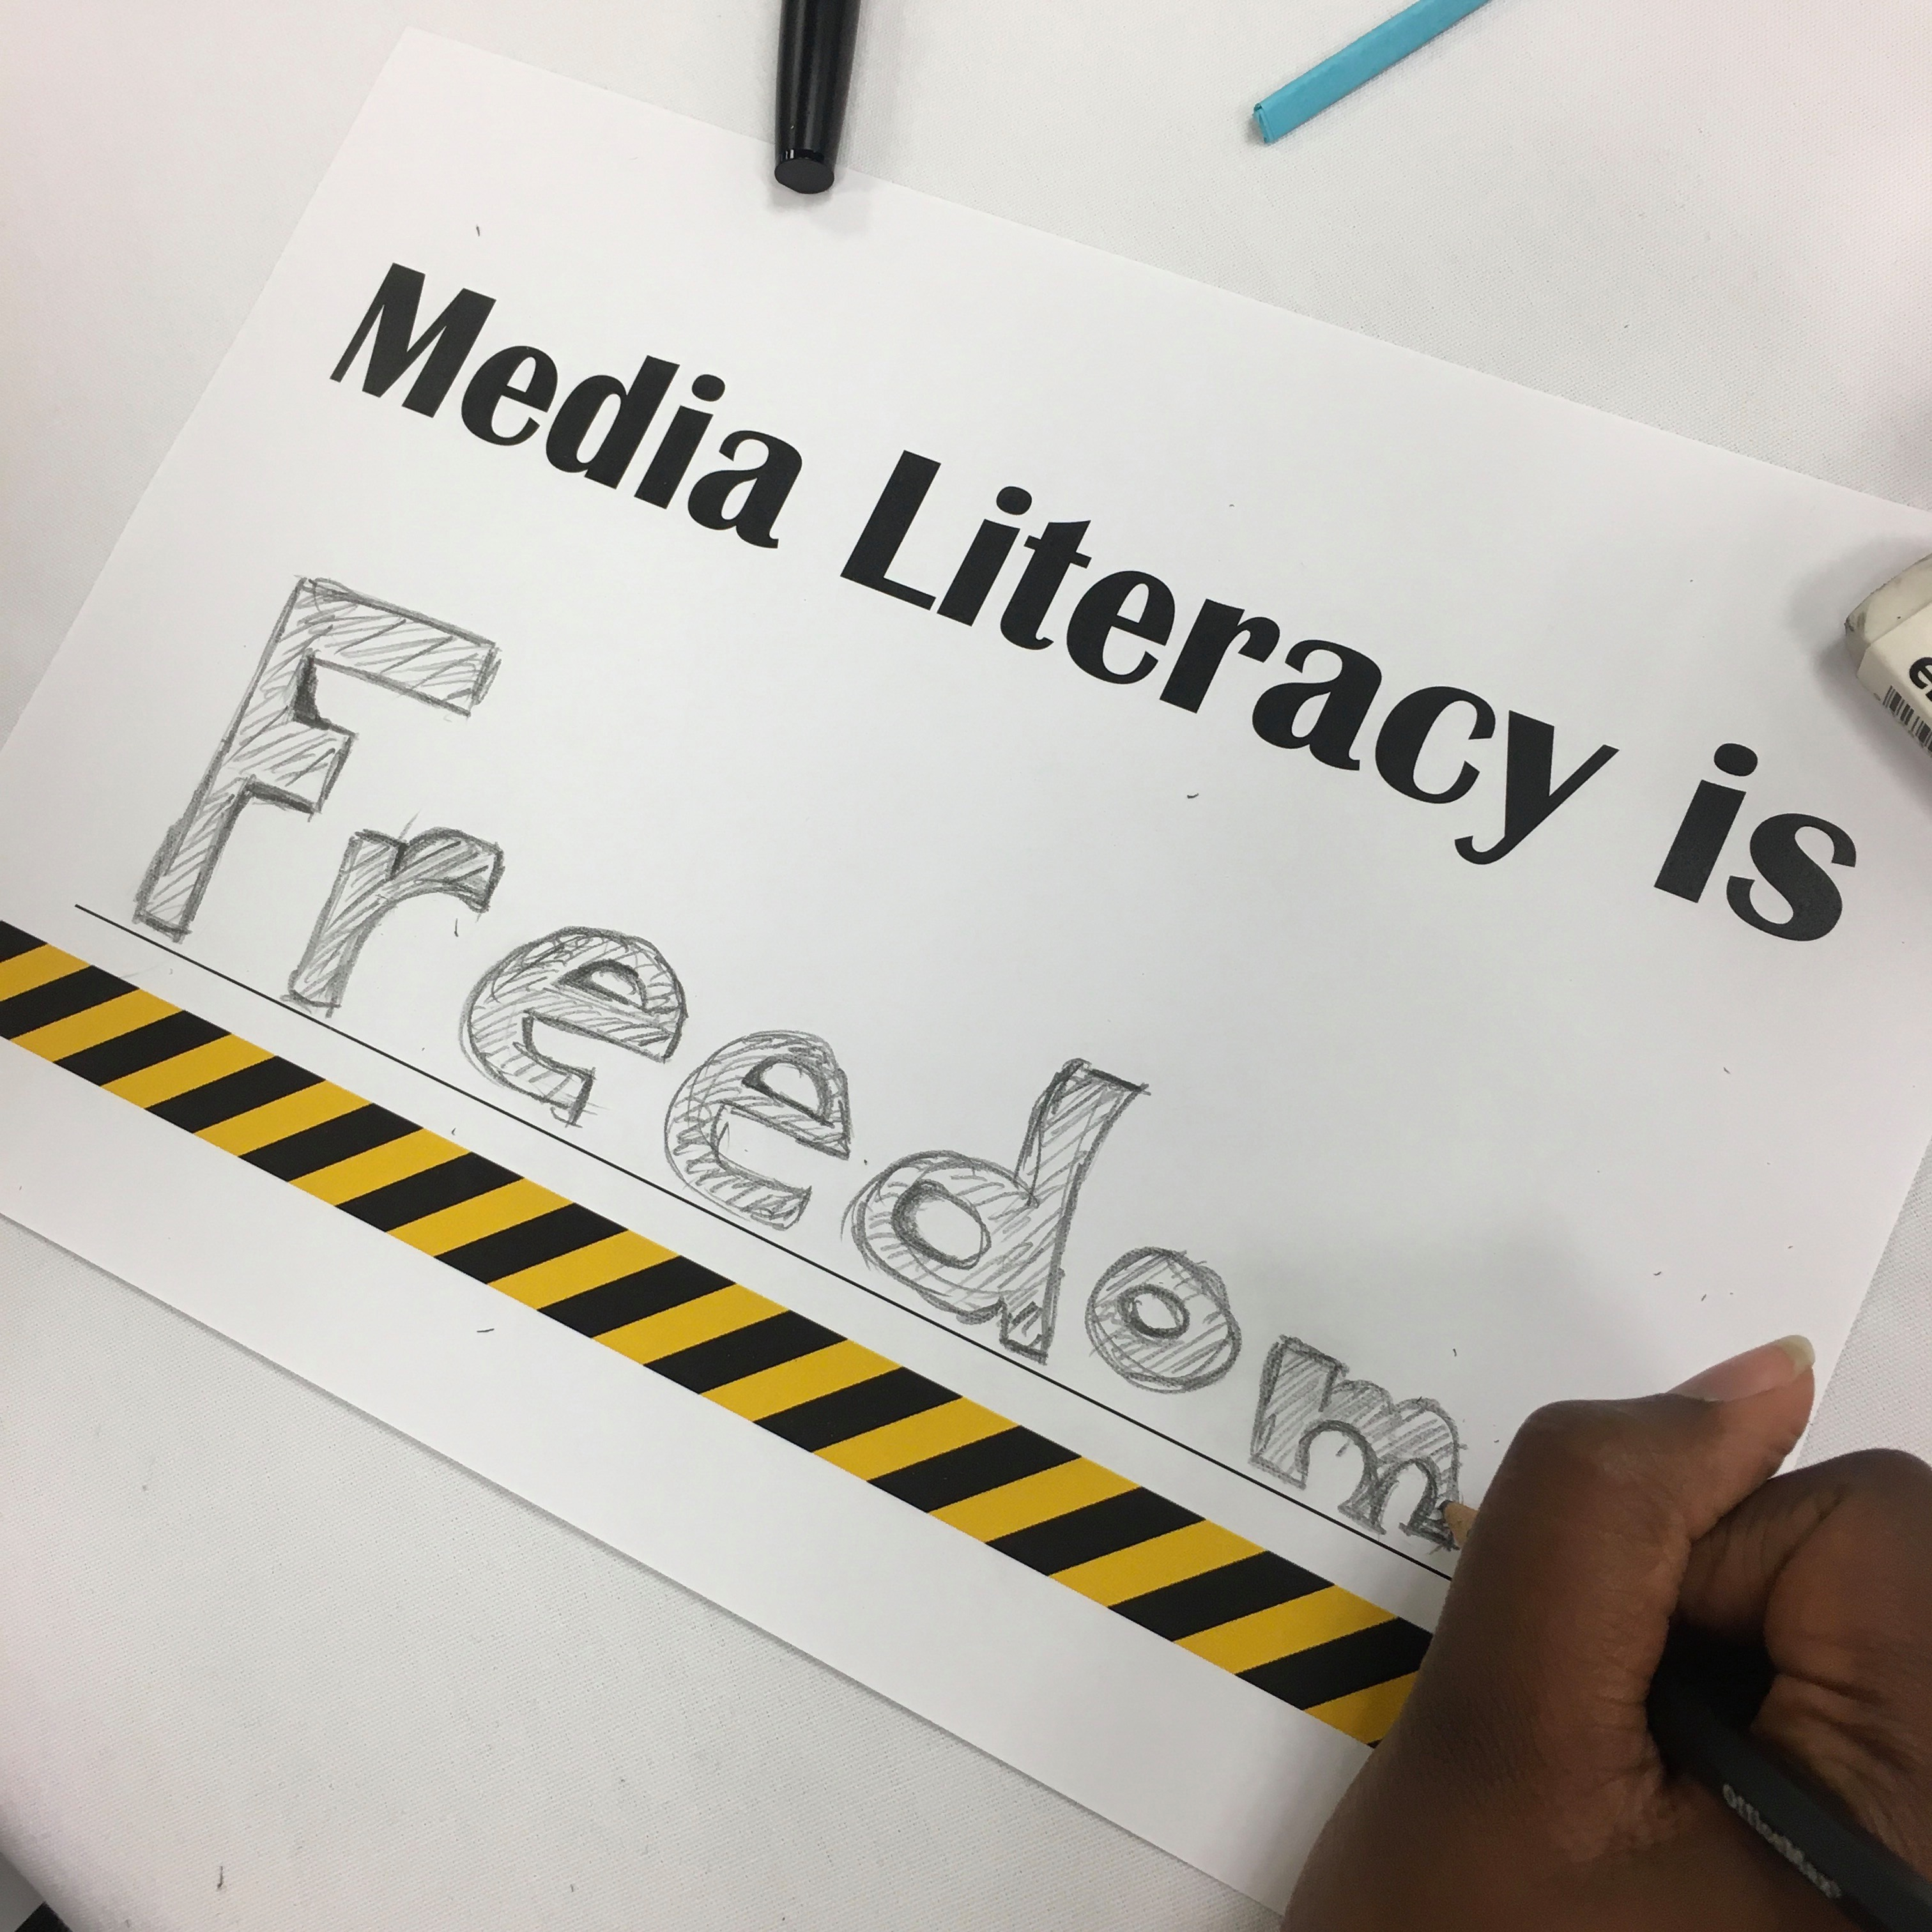 The blank space on a worksheet reading 'Media Literacy is….' has been filled out with the word 'Freedom' in strong, bold lettering. A hand holding a pencil is shown in the lower right corner putting the finishing touches on the word.